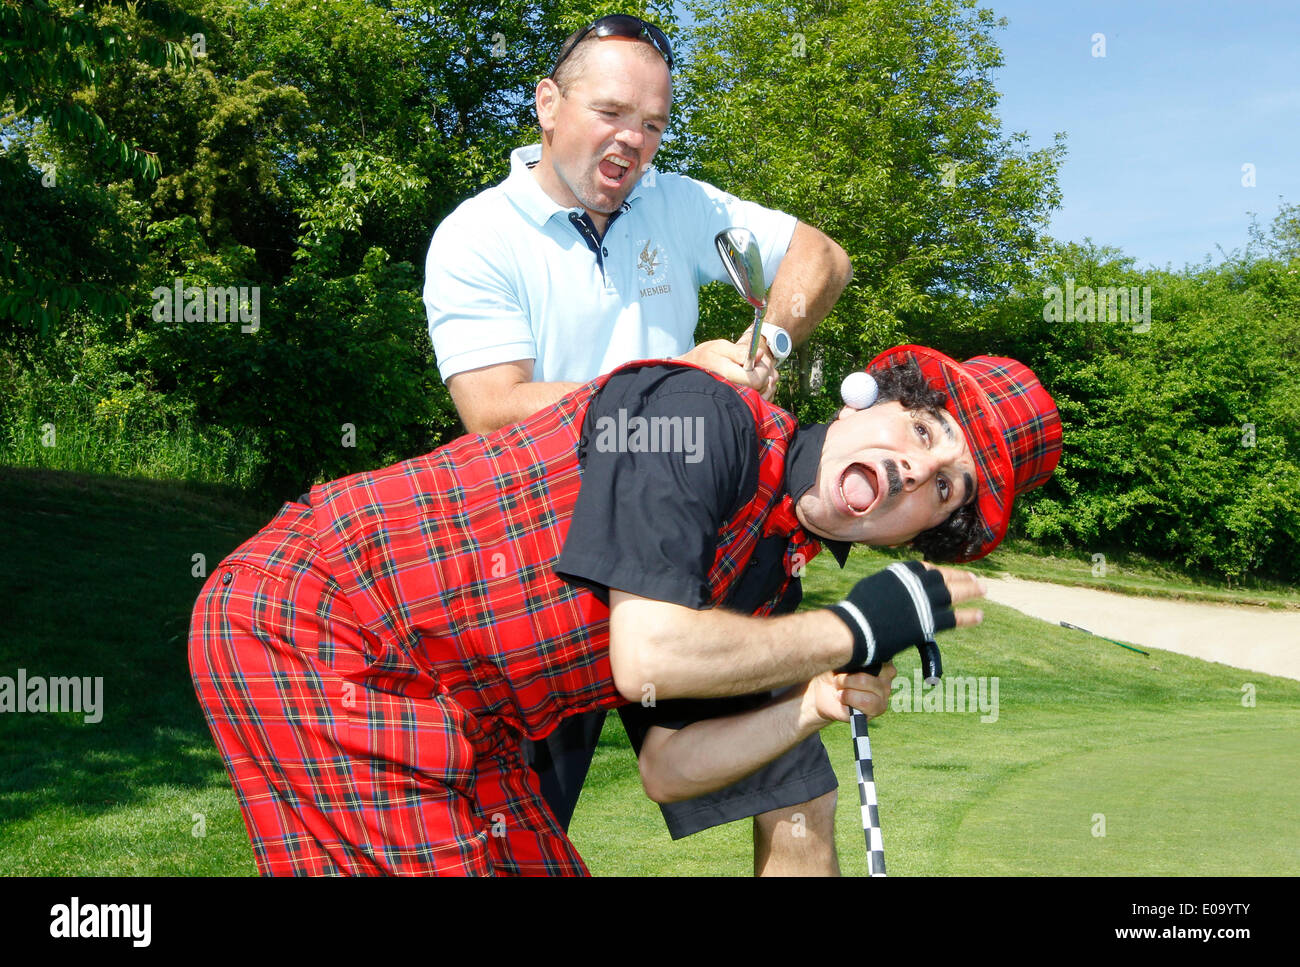 Herbolzheim, Germany - May 5, 2014: Eagles Charity Golf Cup and Gala at Golfclub Breisgau and Europa Park, Rust with ex Boxer Sven Ottke and Charly Credit:  dpa picture alliance/Alamy Live News - Stock Image